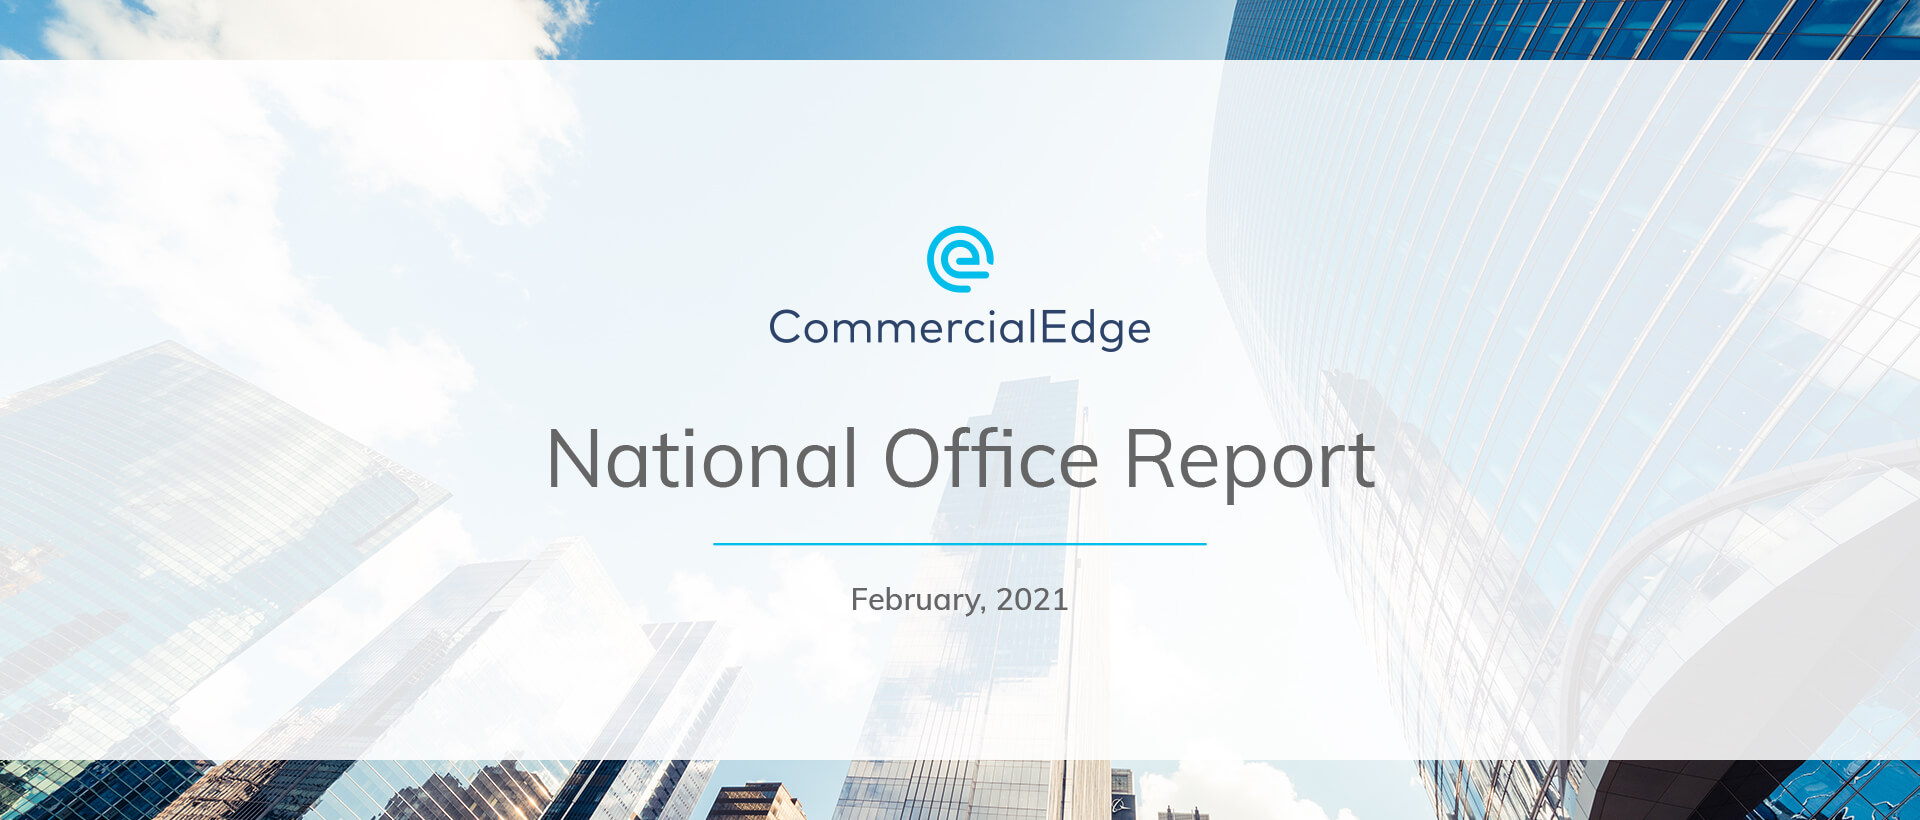 CommercialEdge National Office Report February 2021